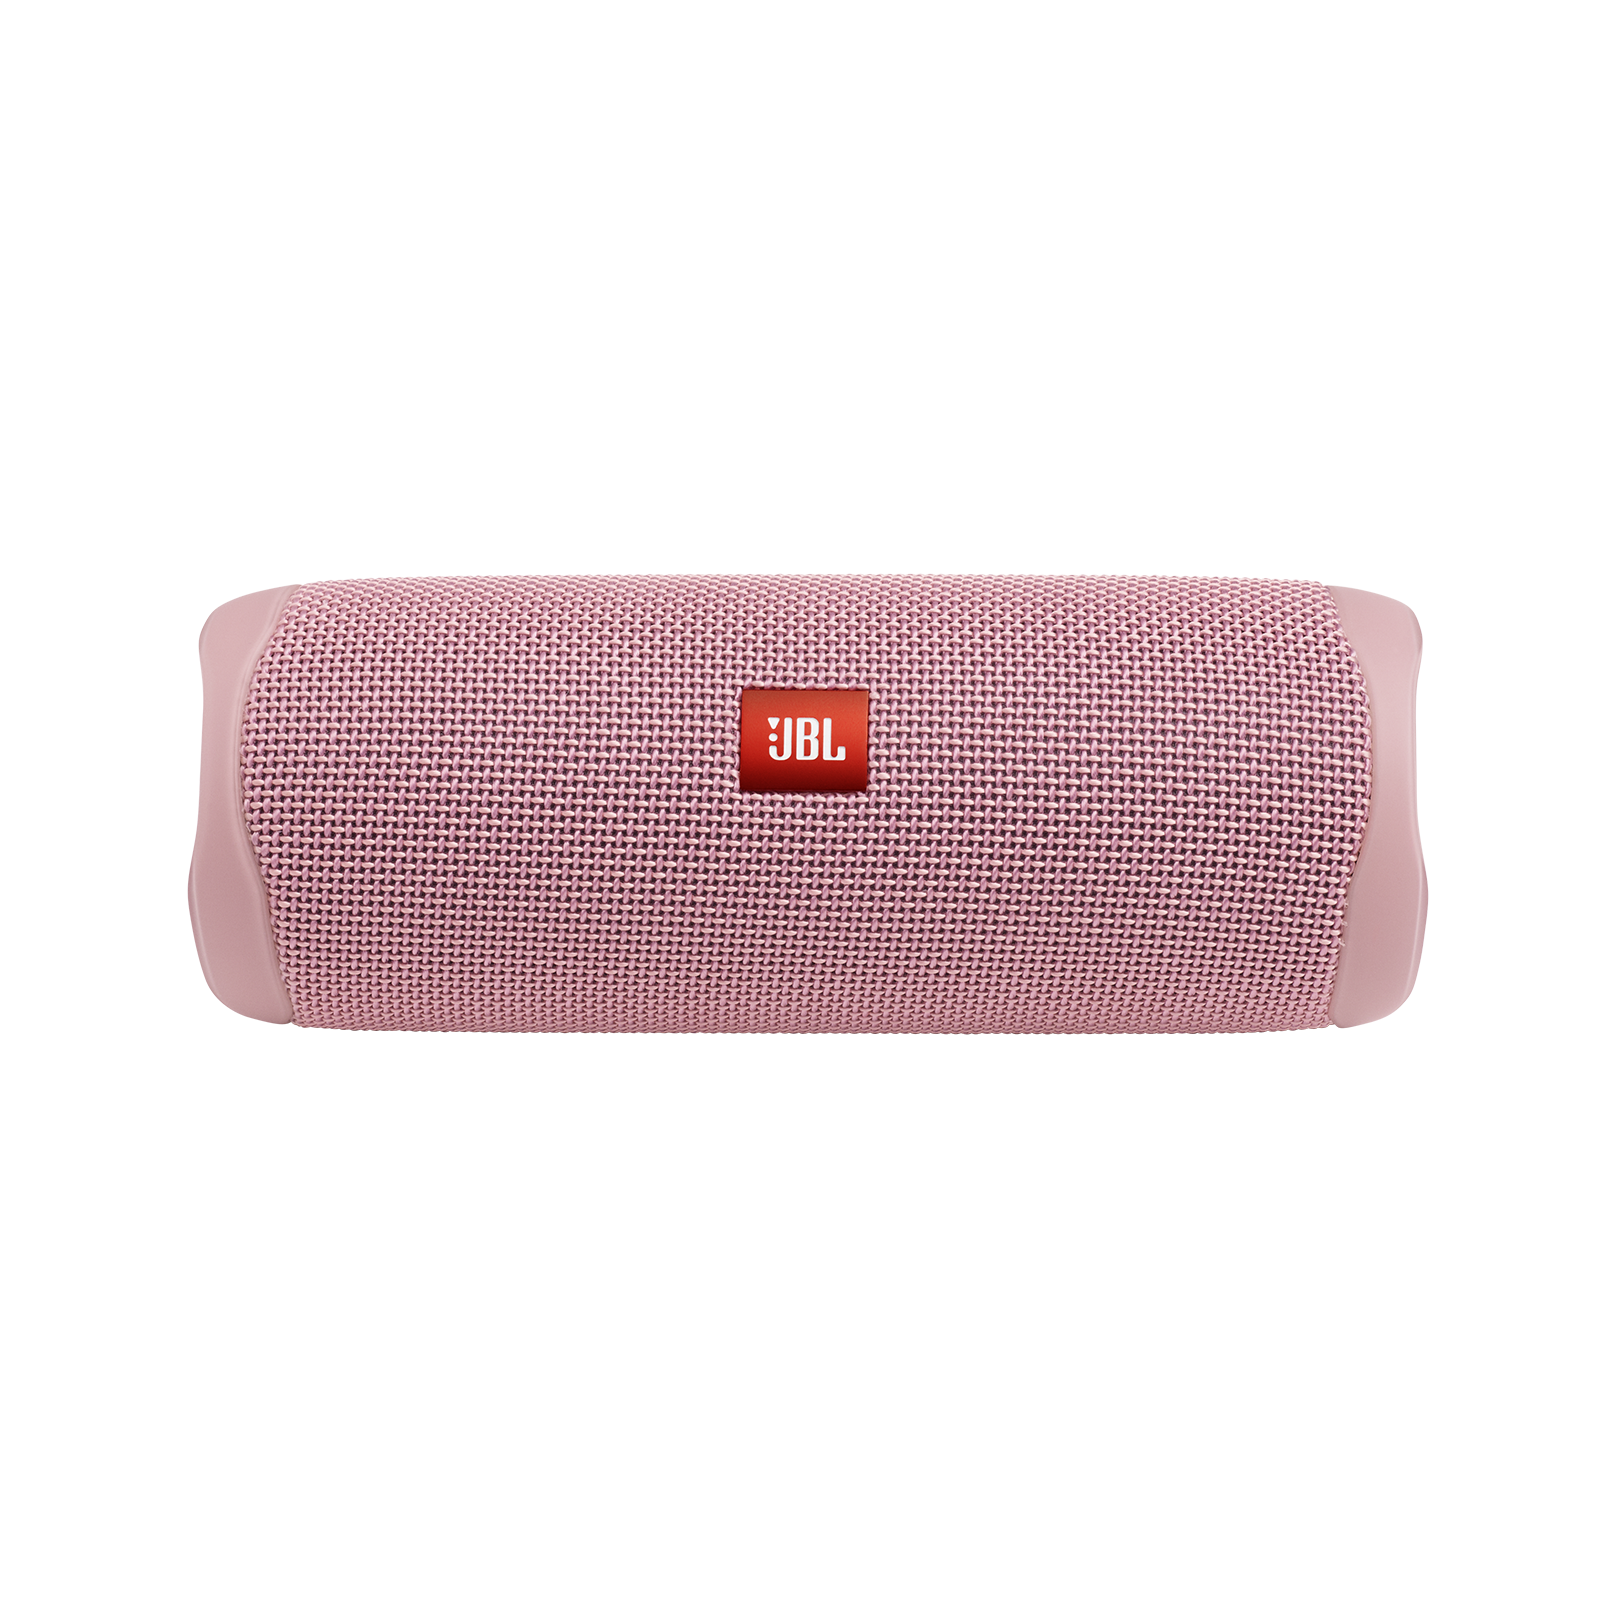 JBL FLIP 5 - Pink - Portable Waterproof Speaker - Front